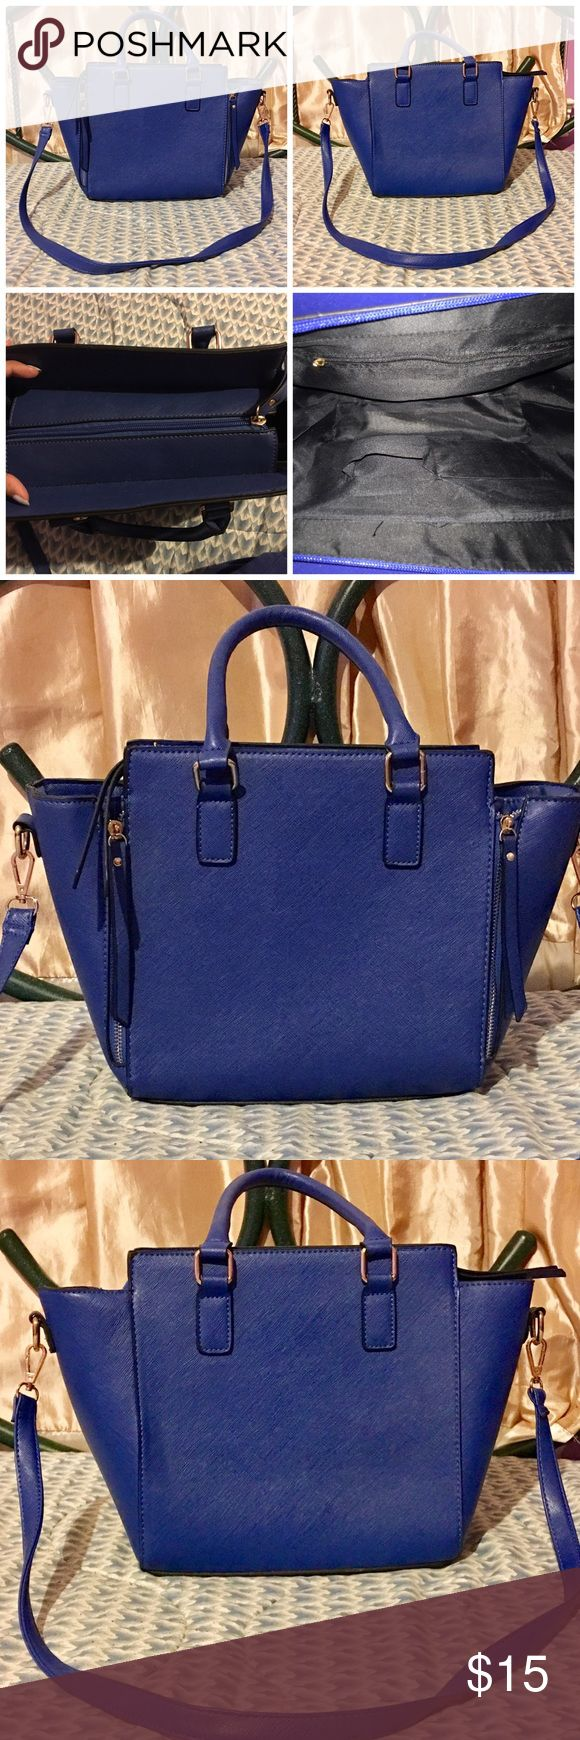 Body Central Saffiano Faux Leather Satchel Body Central Saffiano Faux Leather Satchel in royal blue with crossbody strap. Only used twice. Body Central Bags Crossbody Bags